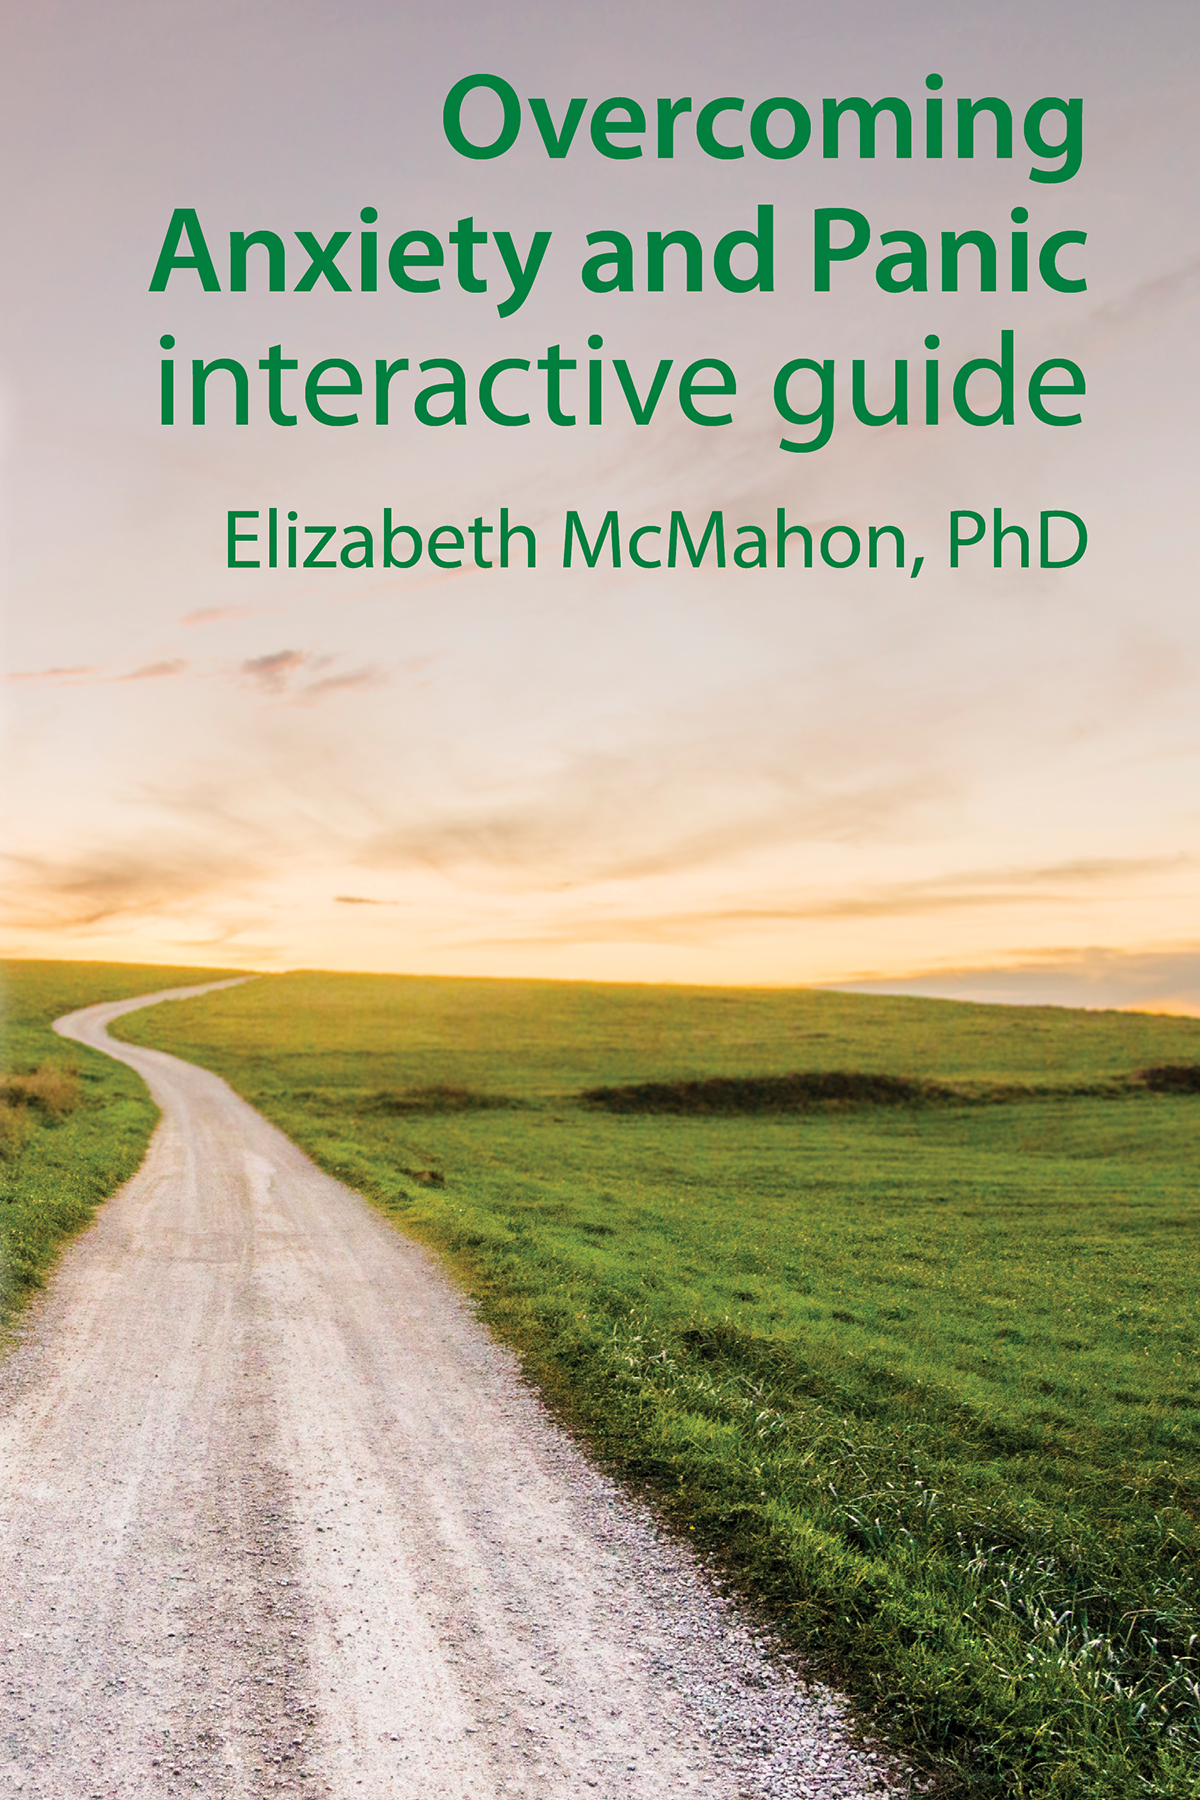 Overcoming Anxiety and Panicinteractive guide - Elizabeth McMahon, PhD